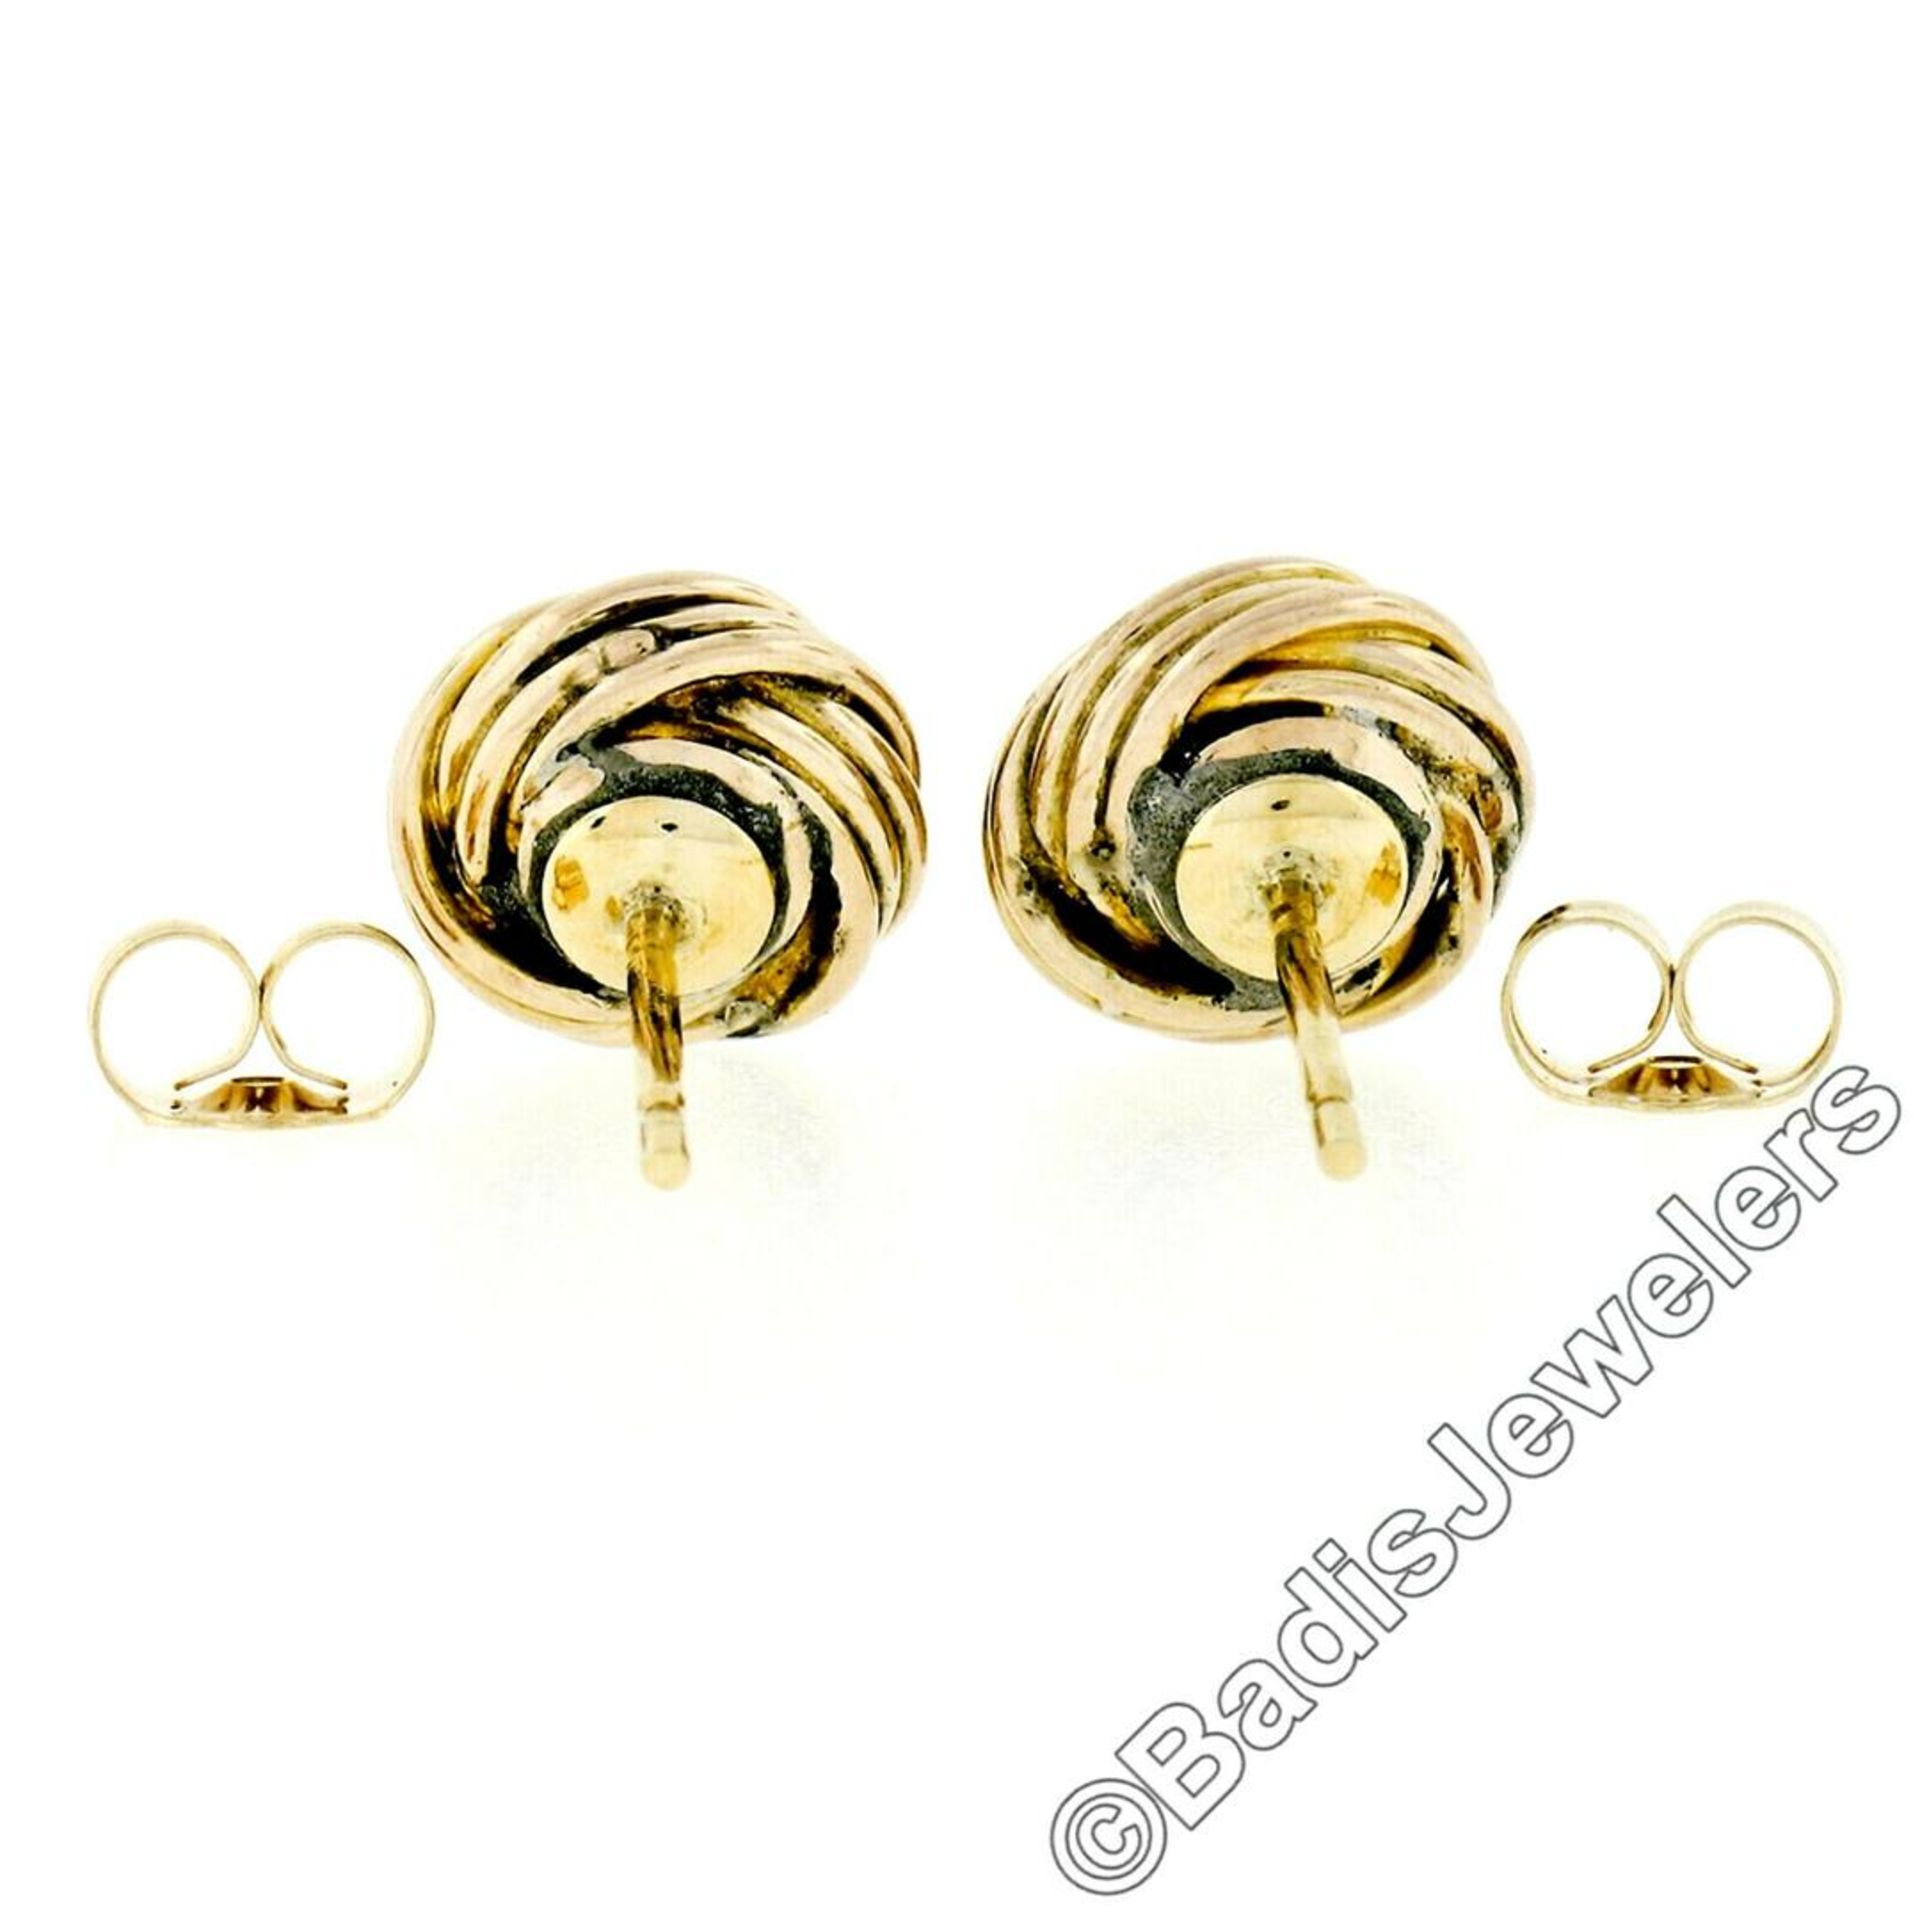 Victorian 14kt Yellow Gold 0.36 ctw Old Mine Cut Diamond Love Knot Stud Earrings - Image 5 of 5